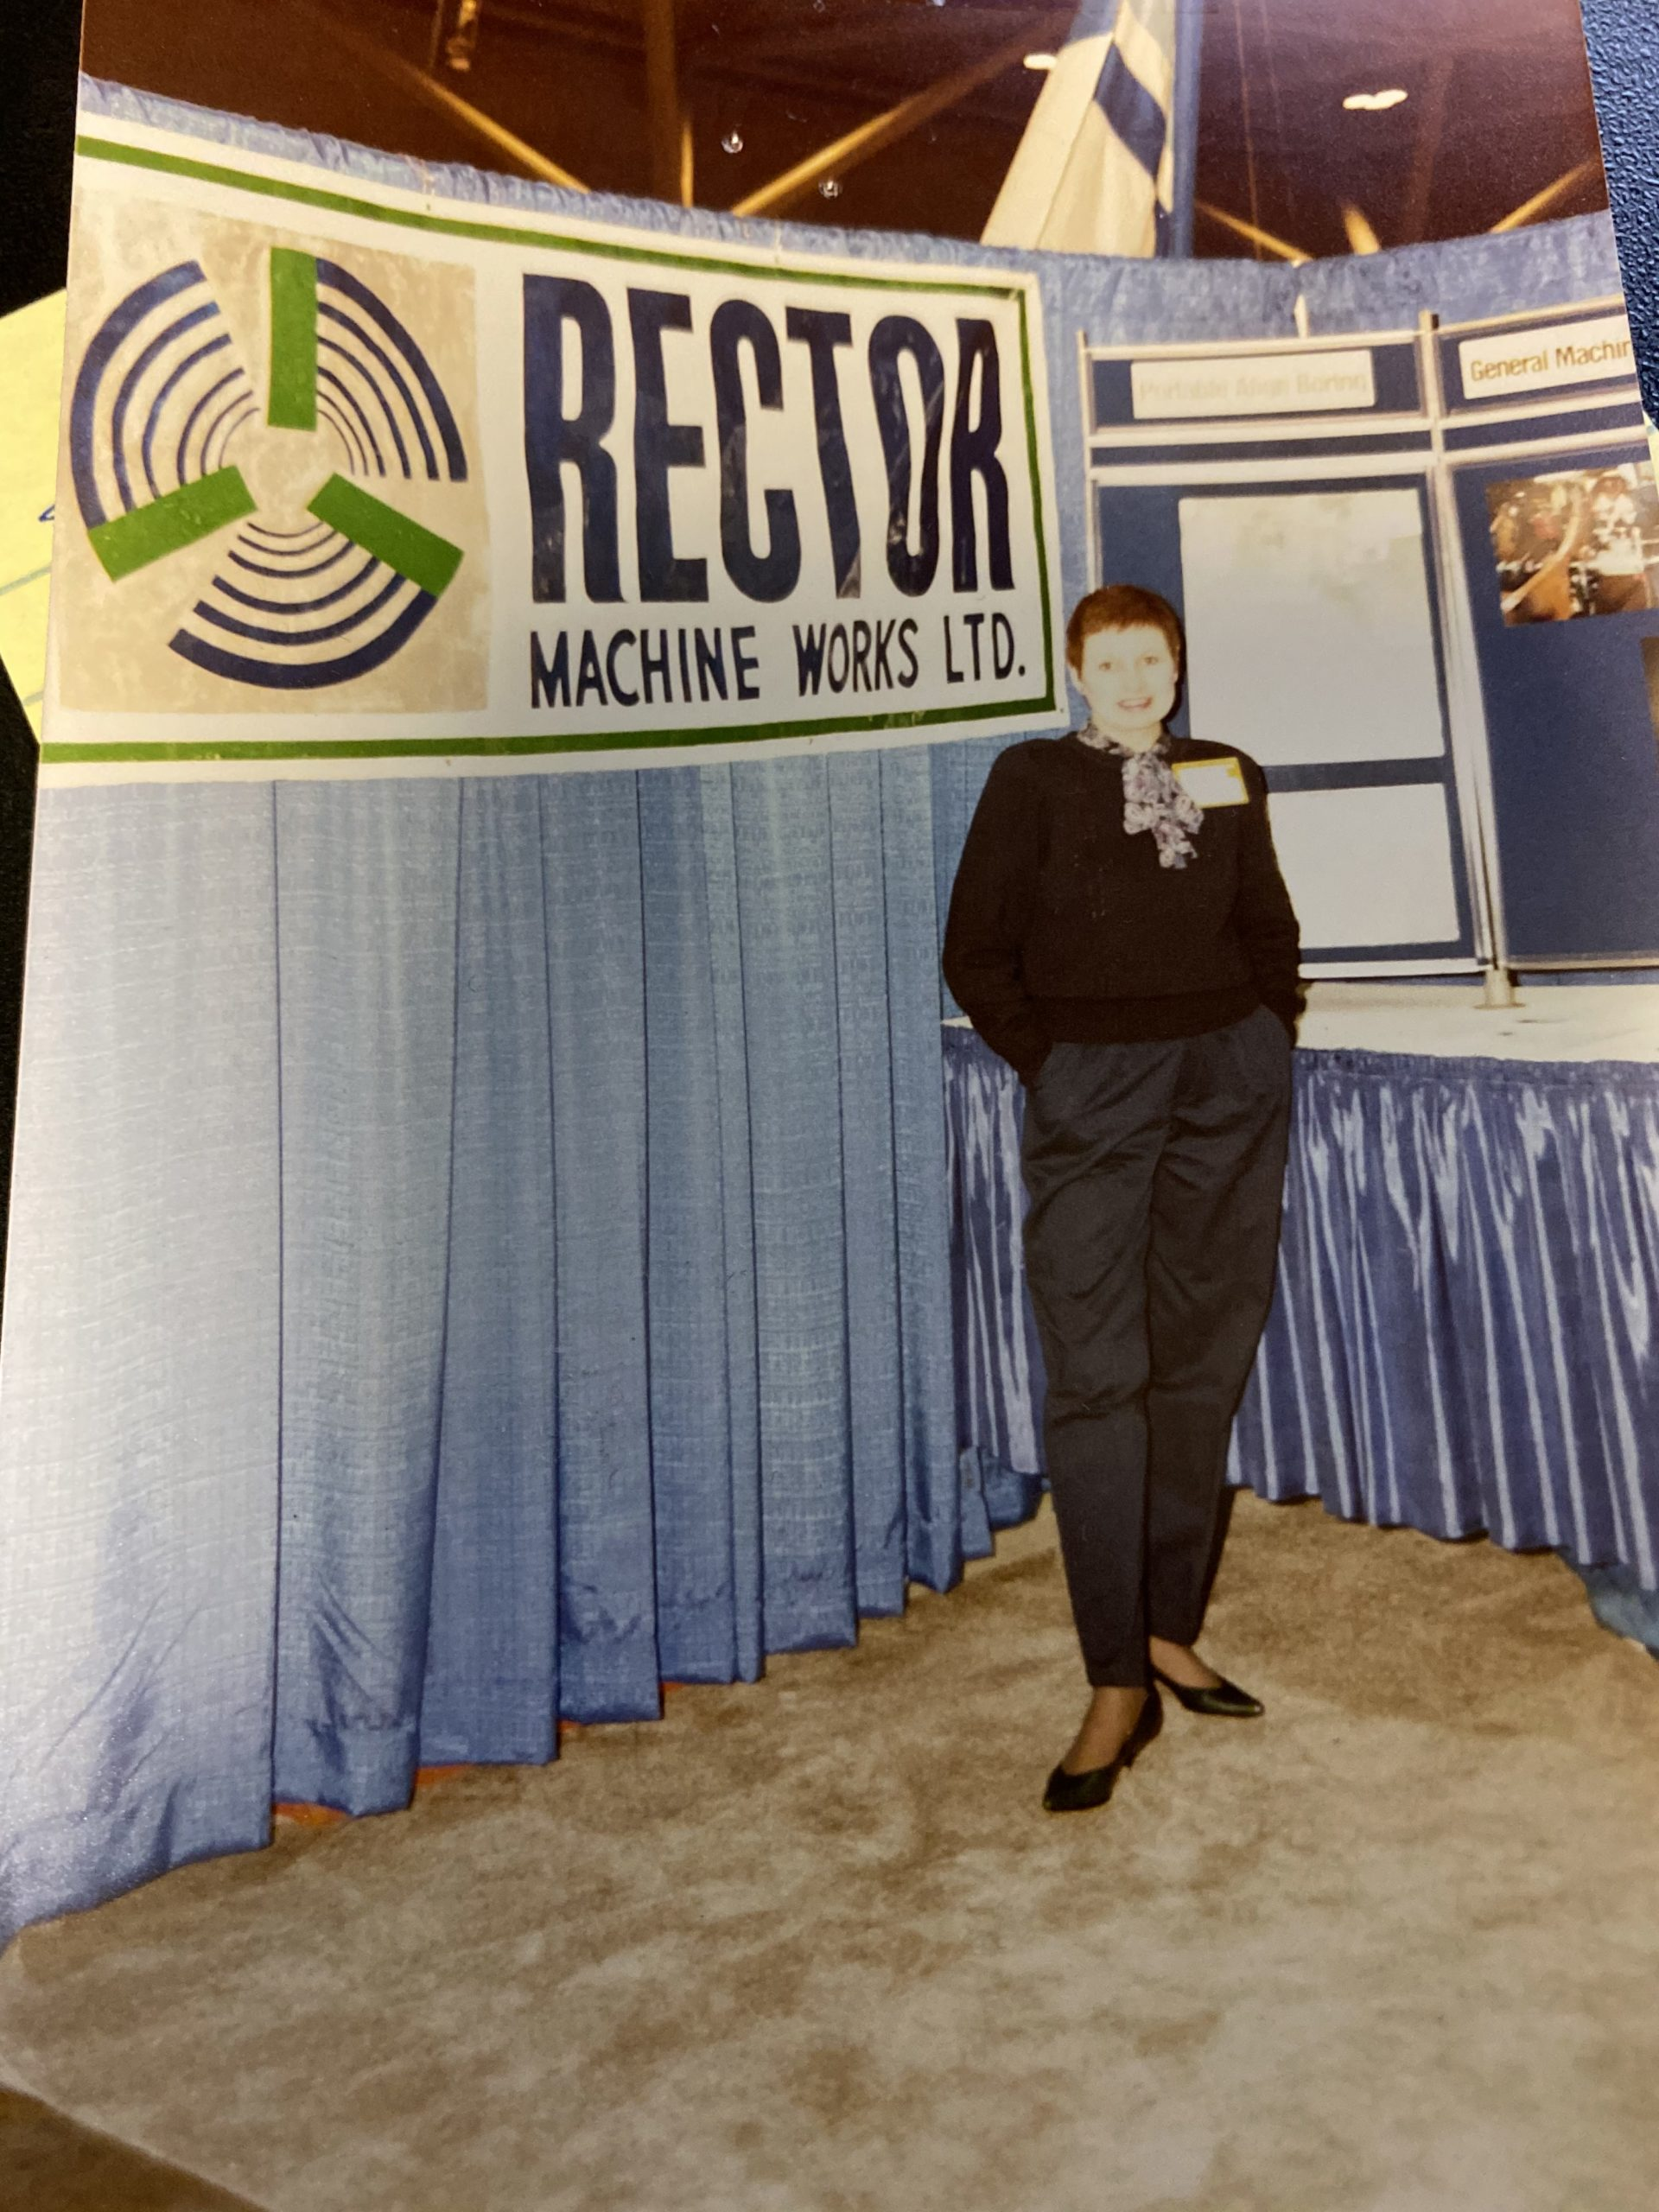 Office manager for almost 50 years, Sandi Rector helped grow the family business from a tiny shop to a leading Northern Ontario company providing welding and machining services across North America